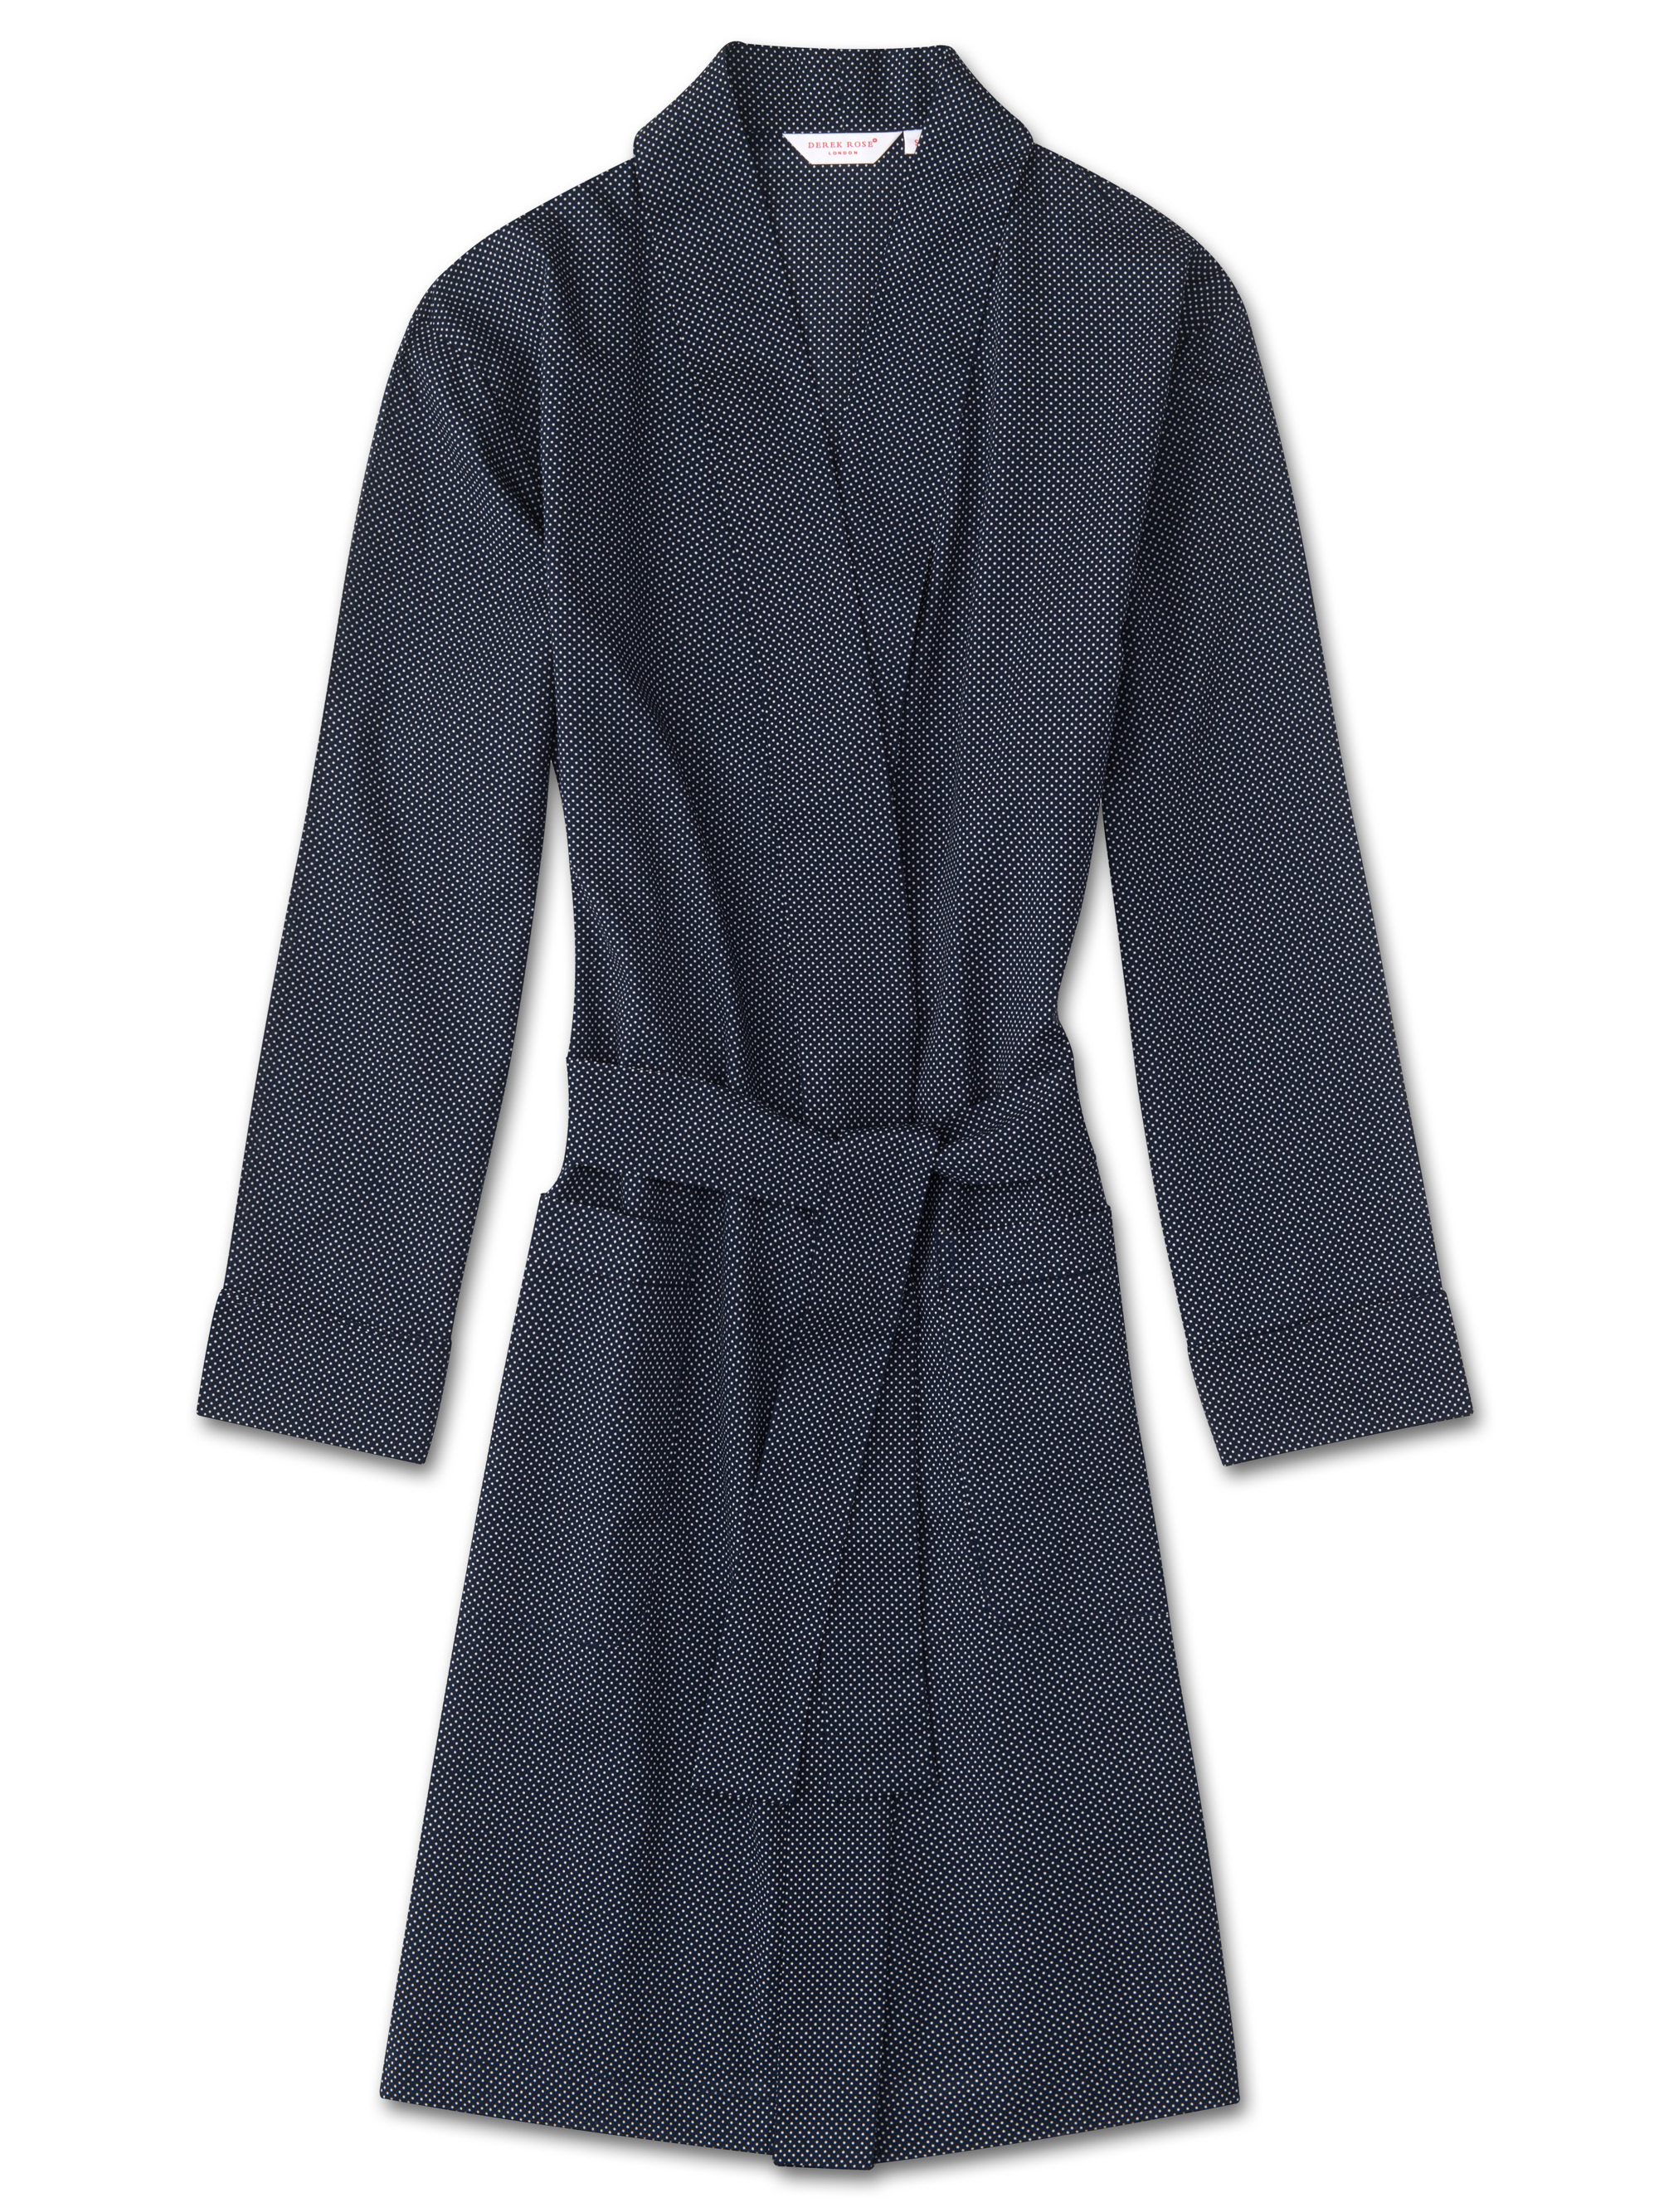 Derek Rose Women's Dressing Gown Plaza 21 Cotton Batiste Polka Dot Navy